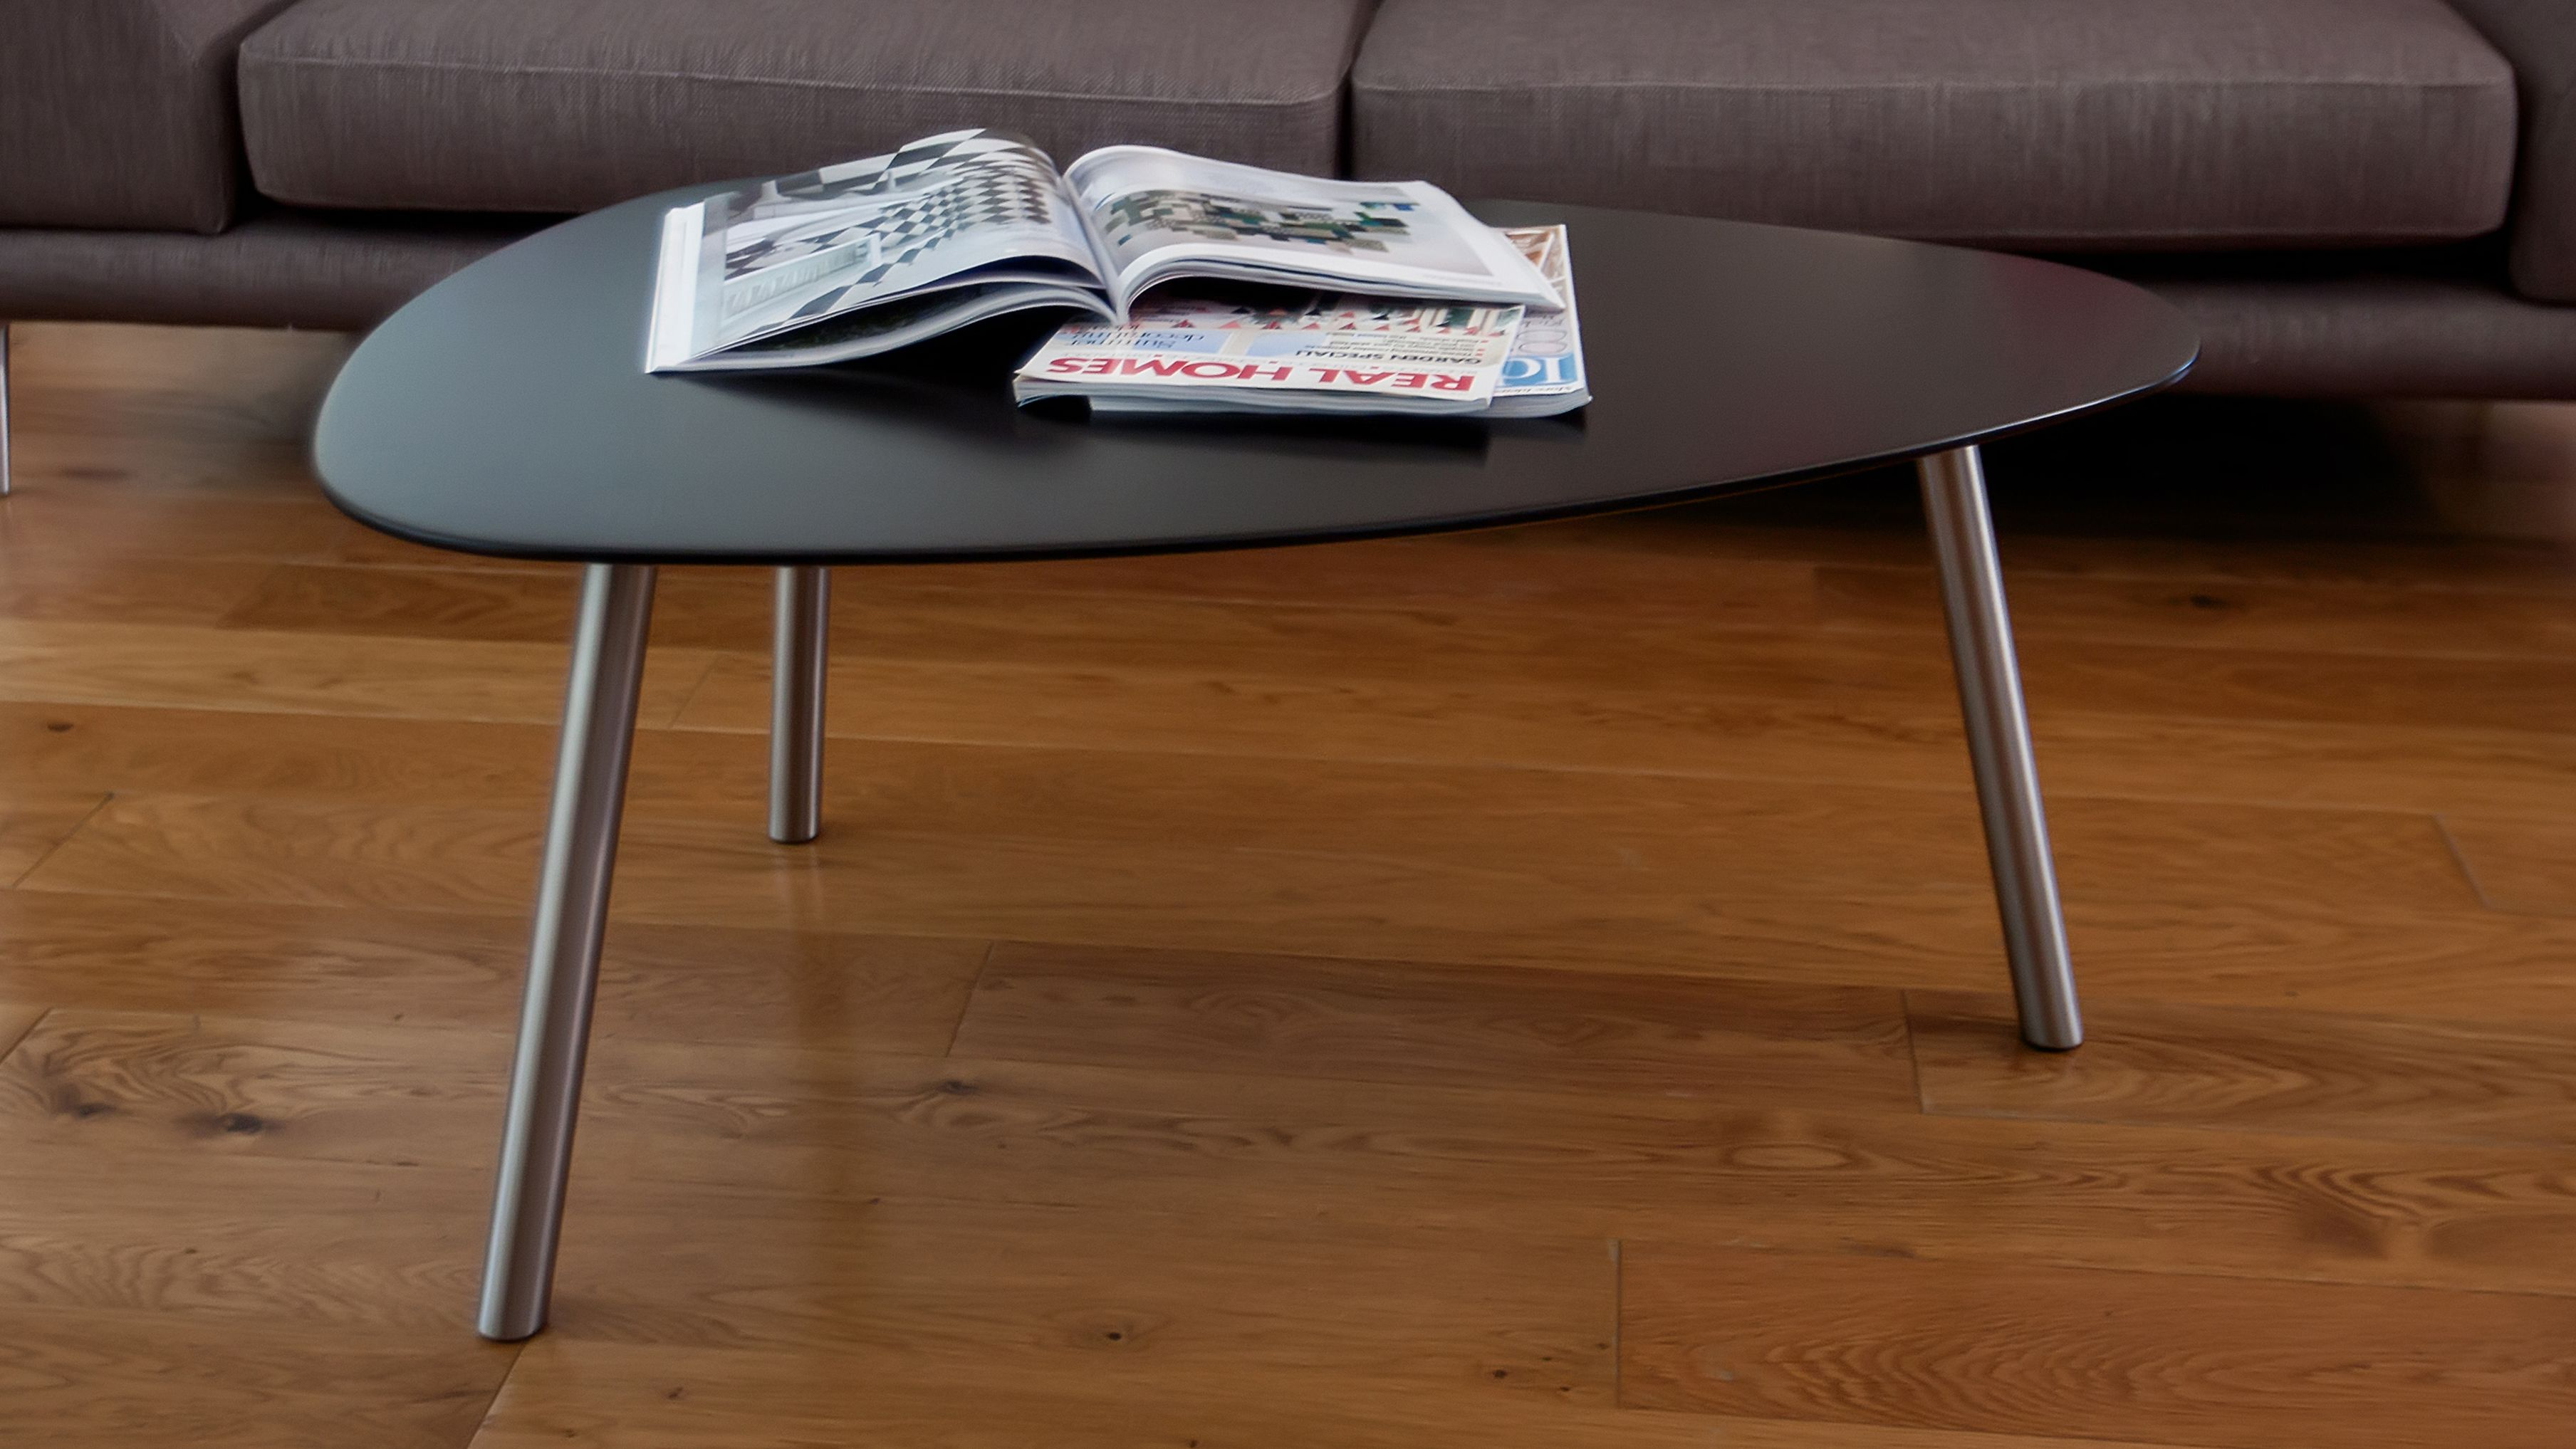 The Assi Matt Black Coffee Table is modern in design supported by